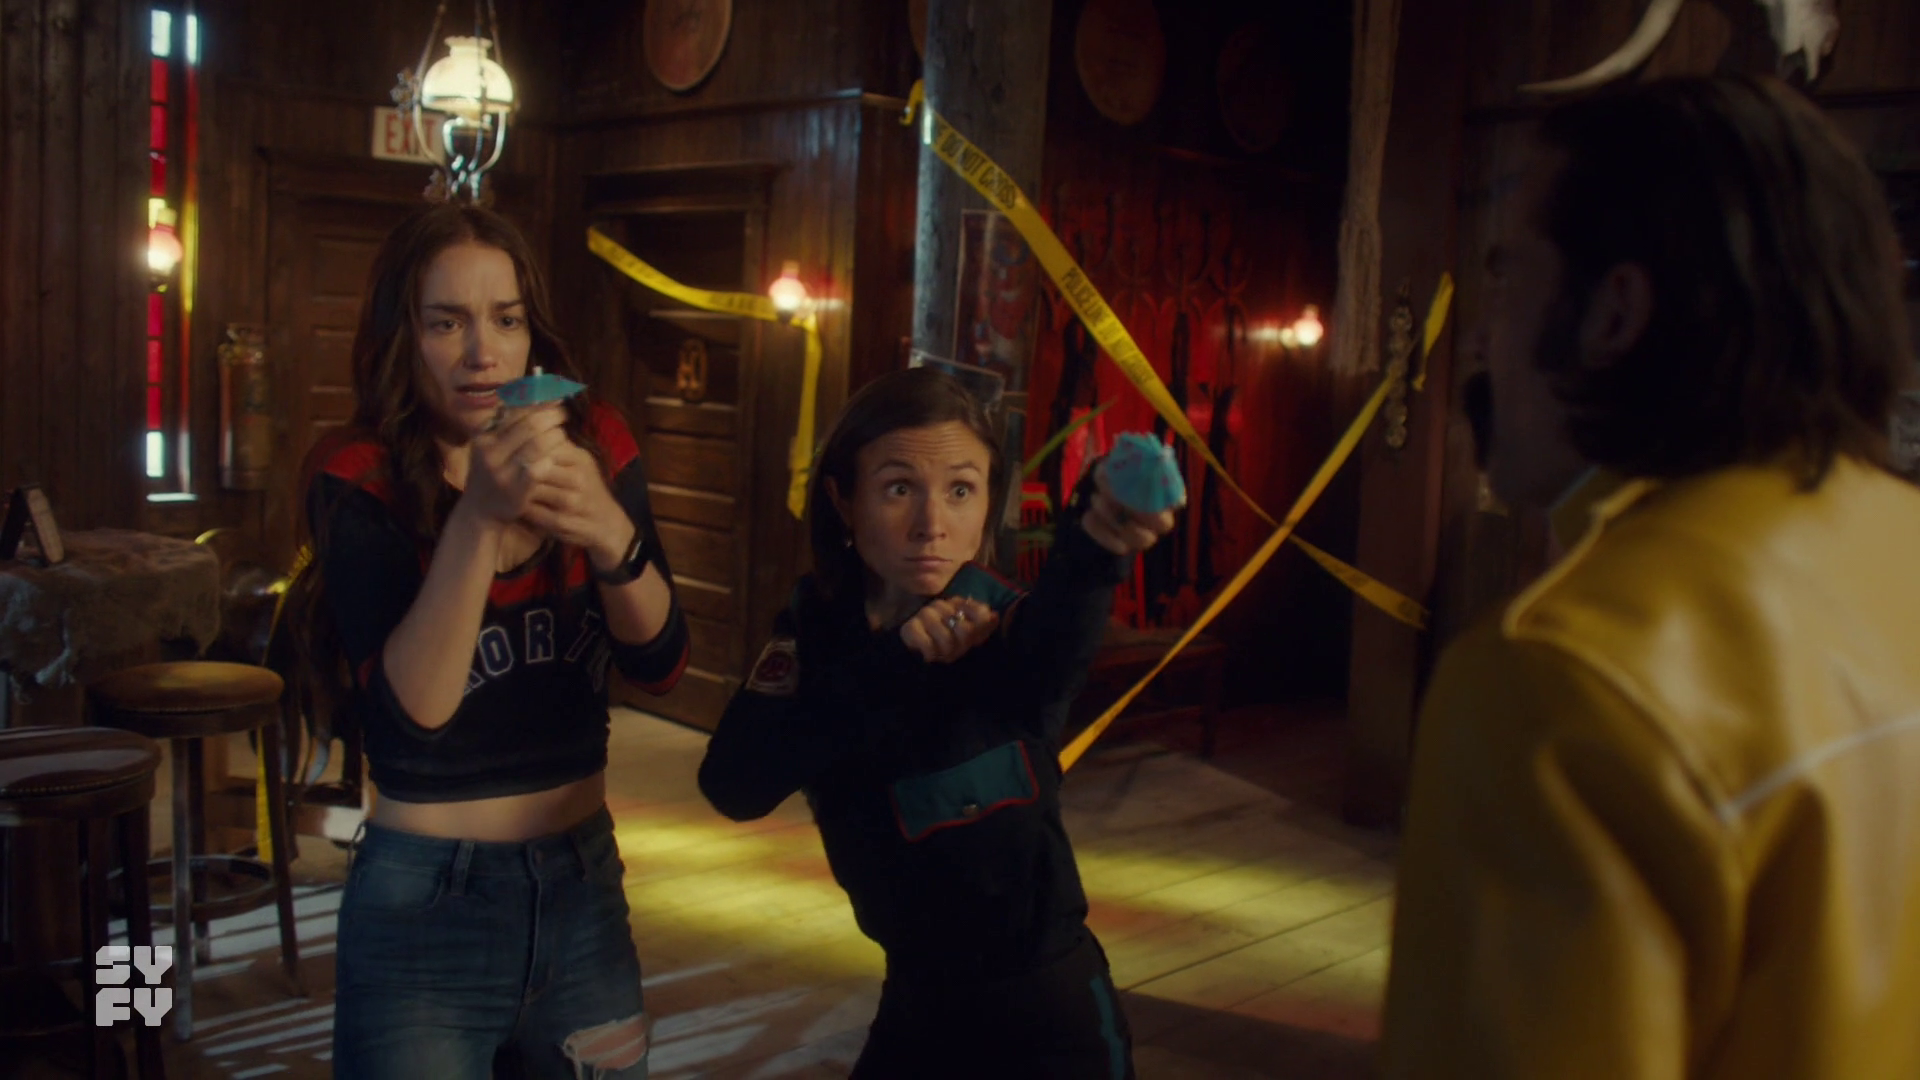 Wynonna and Waverly defending themselves with little paper umbrellas